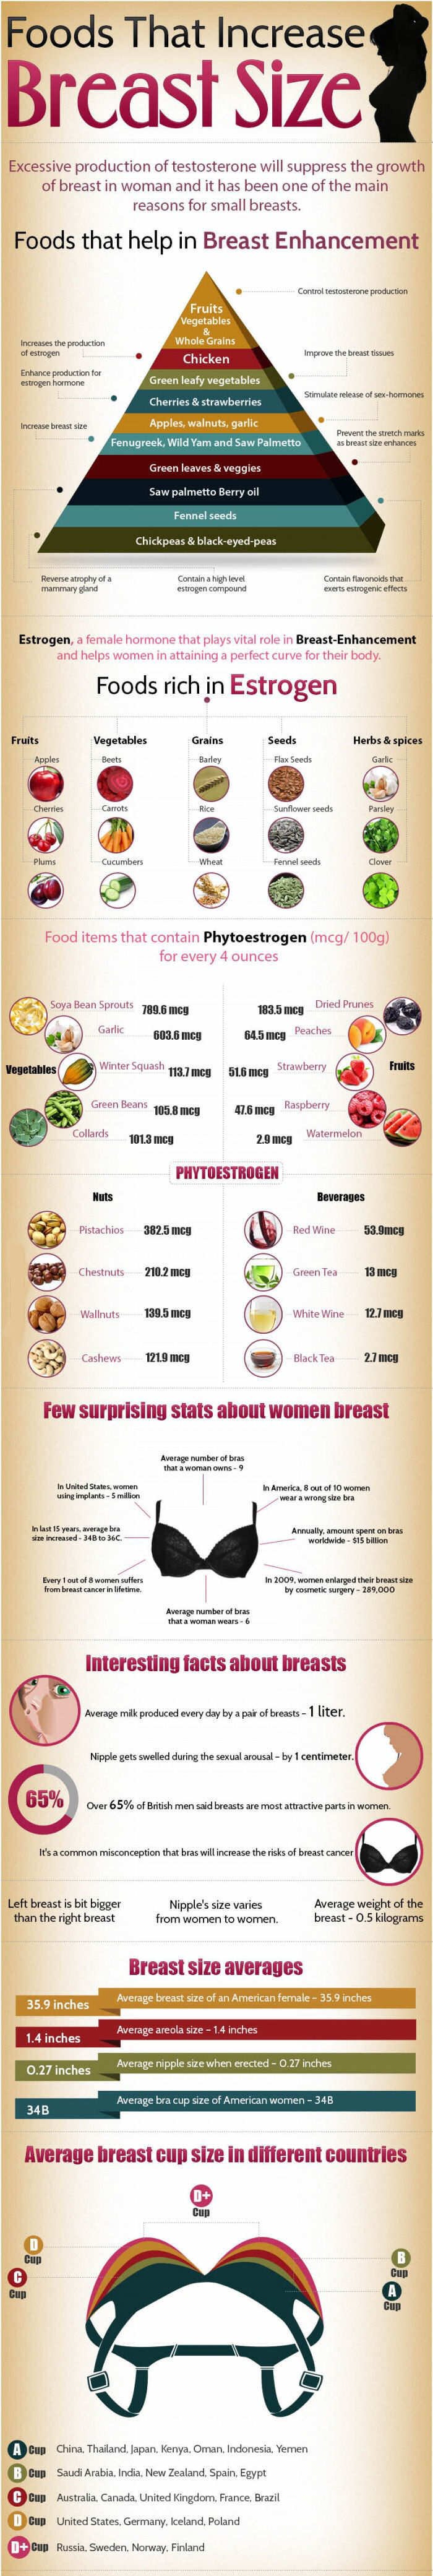 Foods That Increase Breast Size Pictures, Photos, and ...